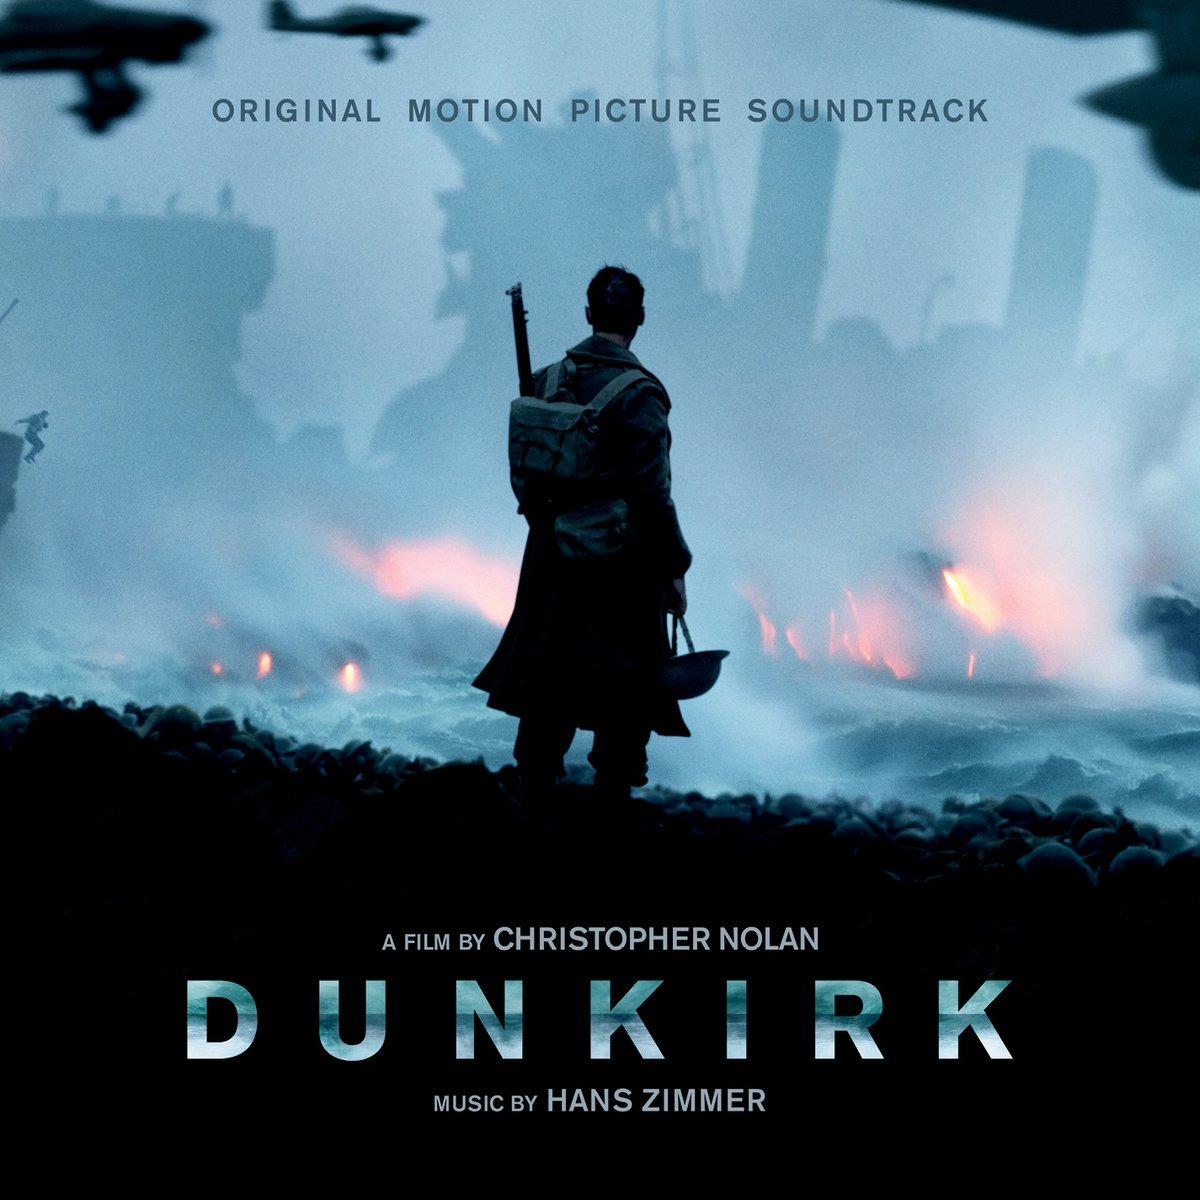 97-year-old veteran of Dunkirk reviews Dunkirk